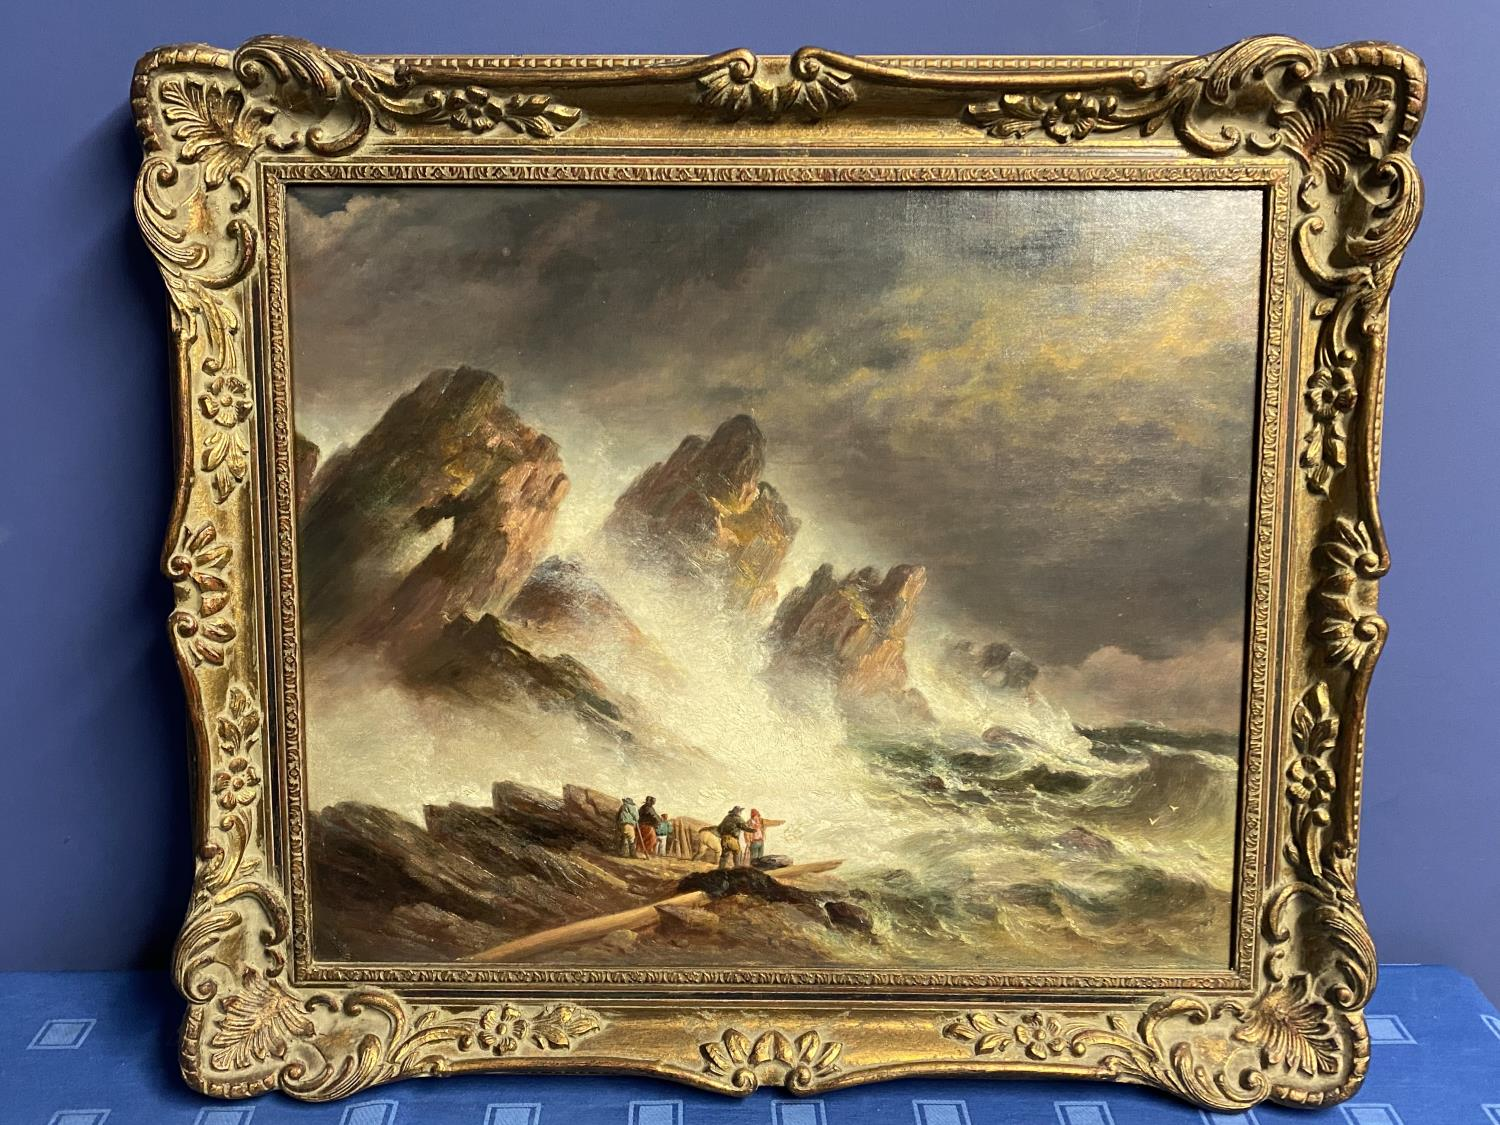 C19th oil on canvas, figures on rocks within a stormy sea, 50 x 60cm